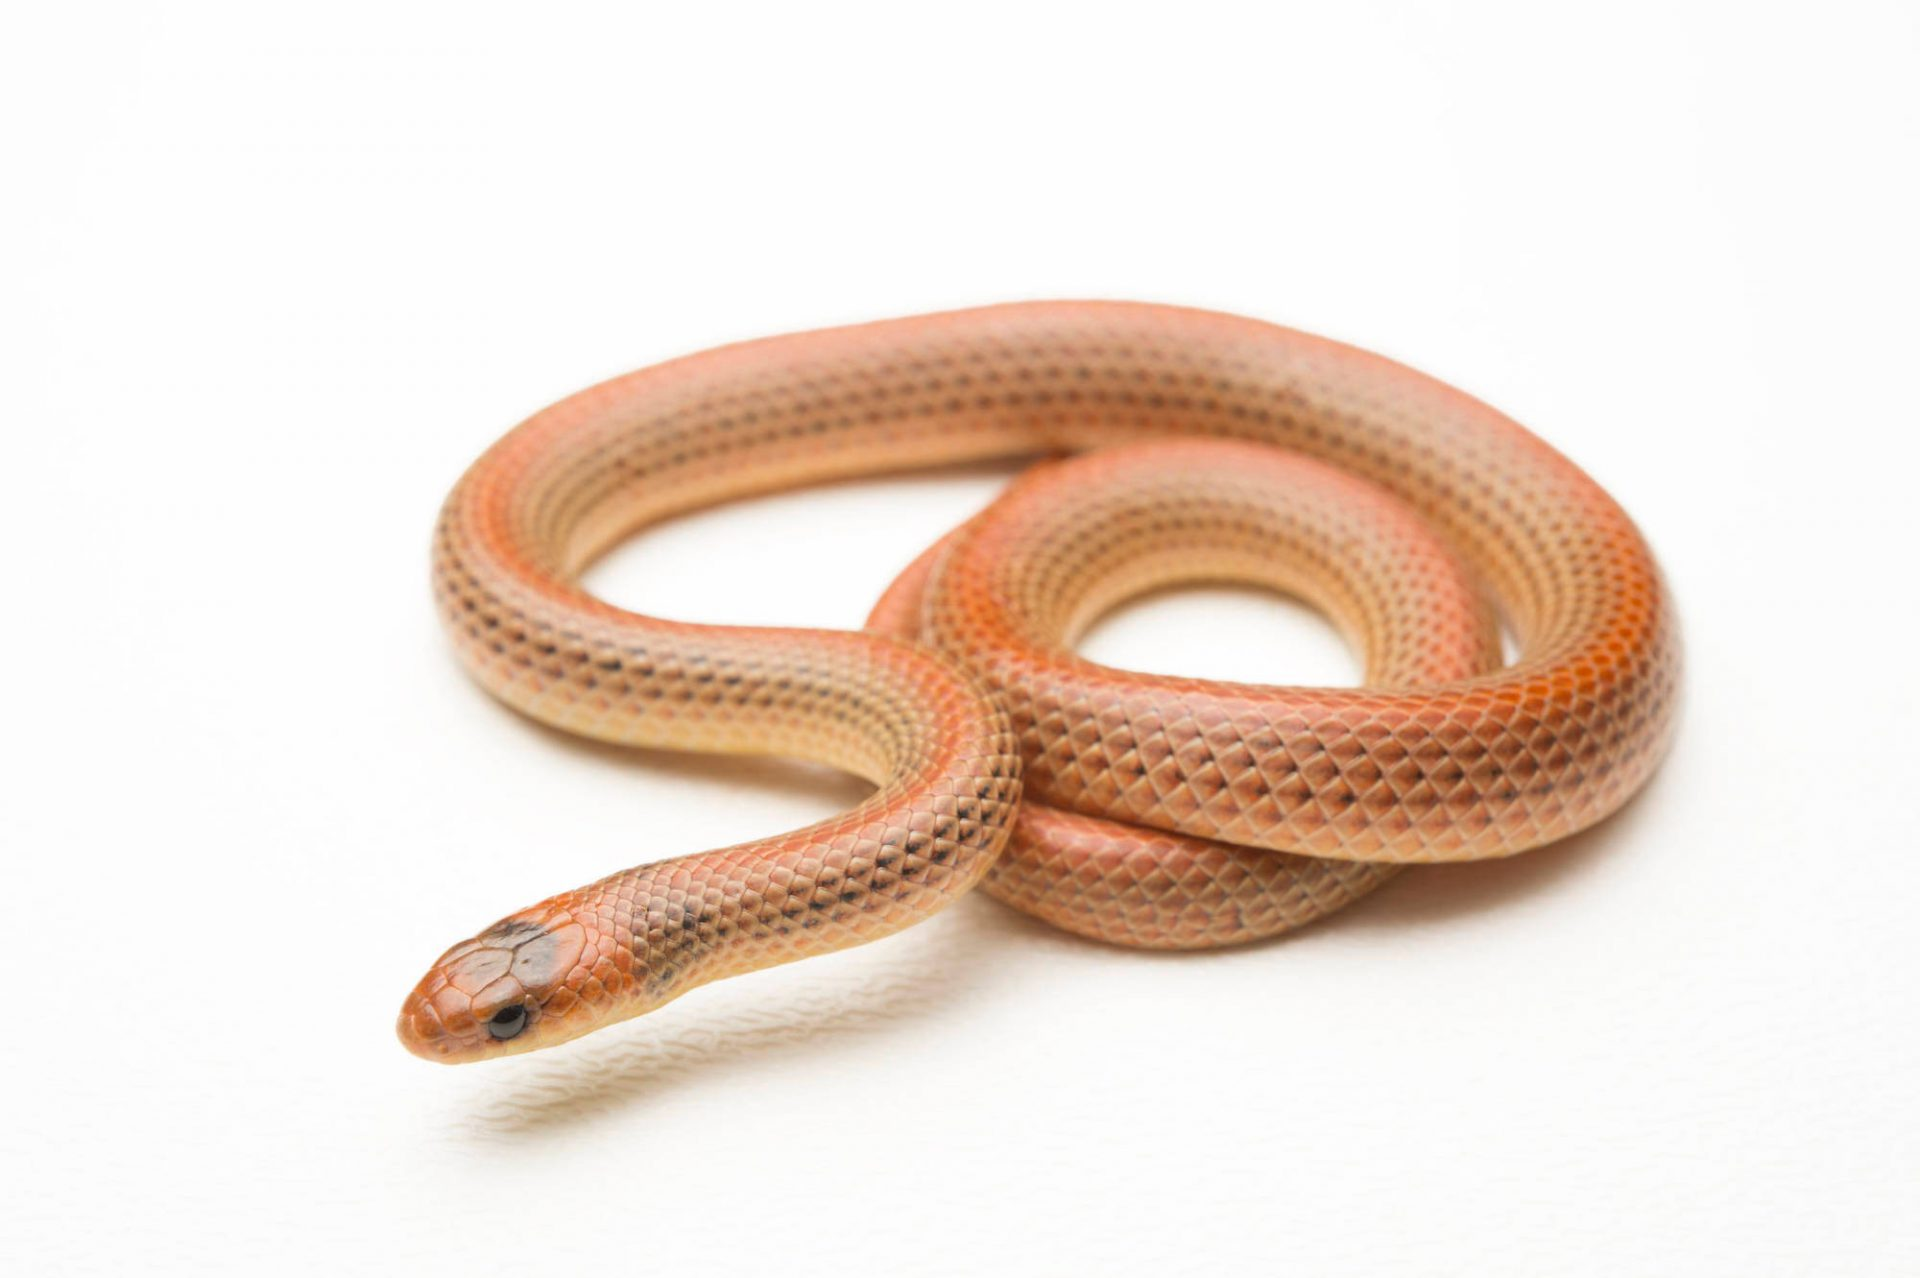 A studio portrait of a Western ground snake, Sonora semiannulata.